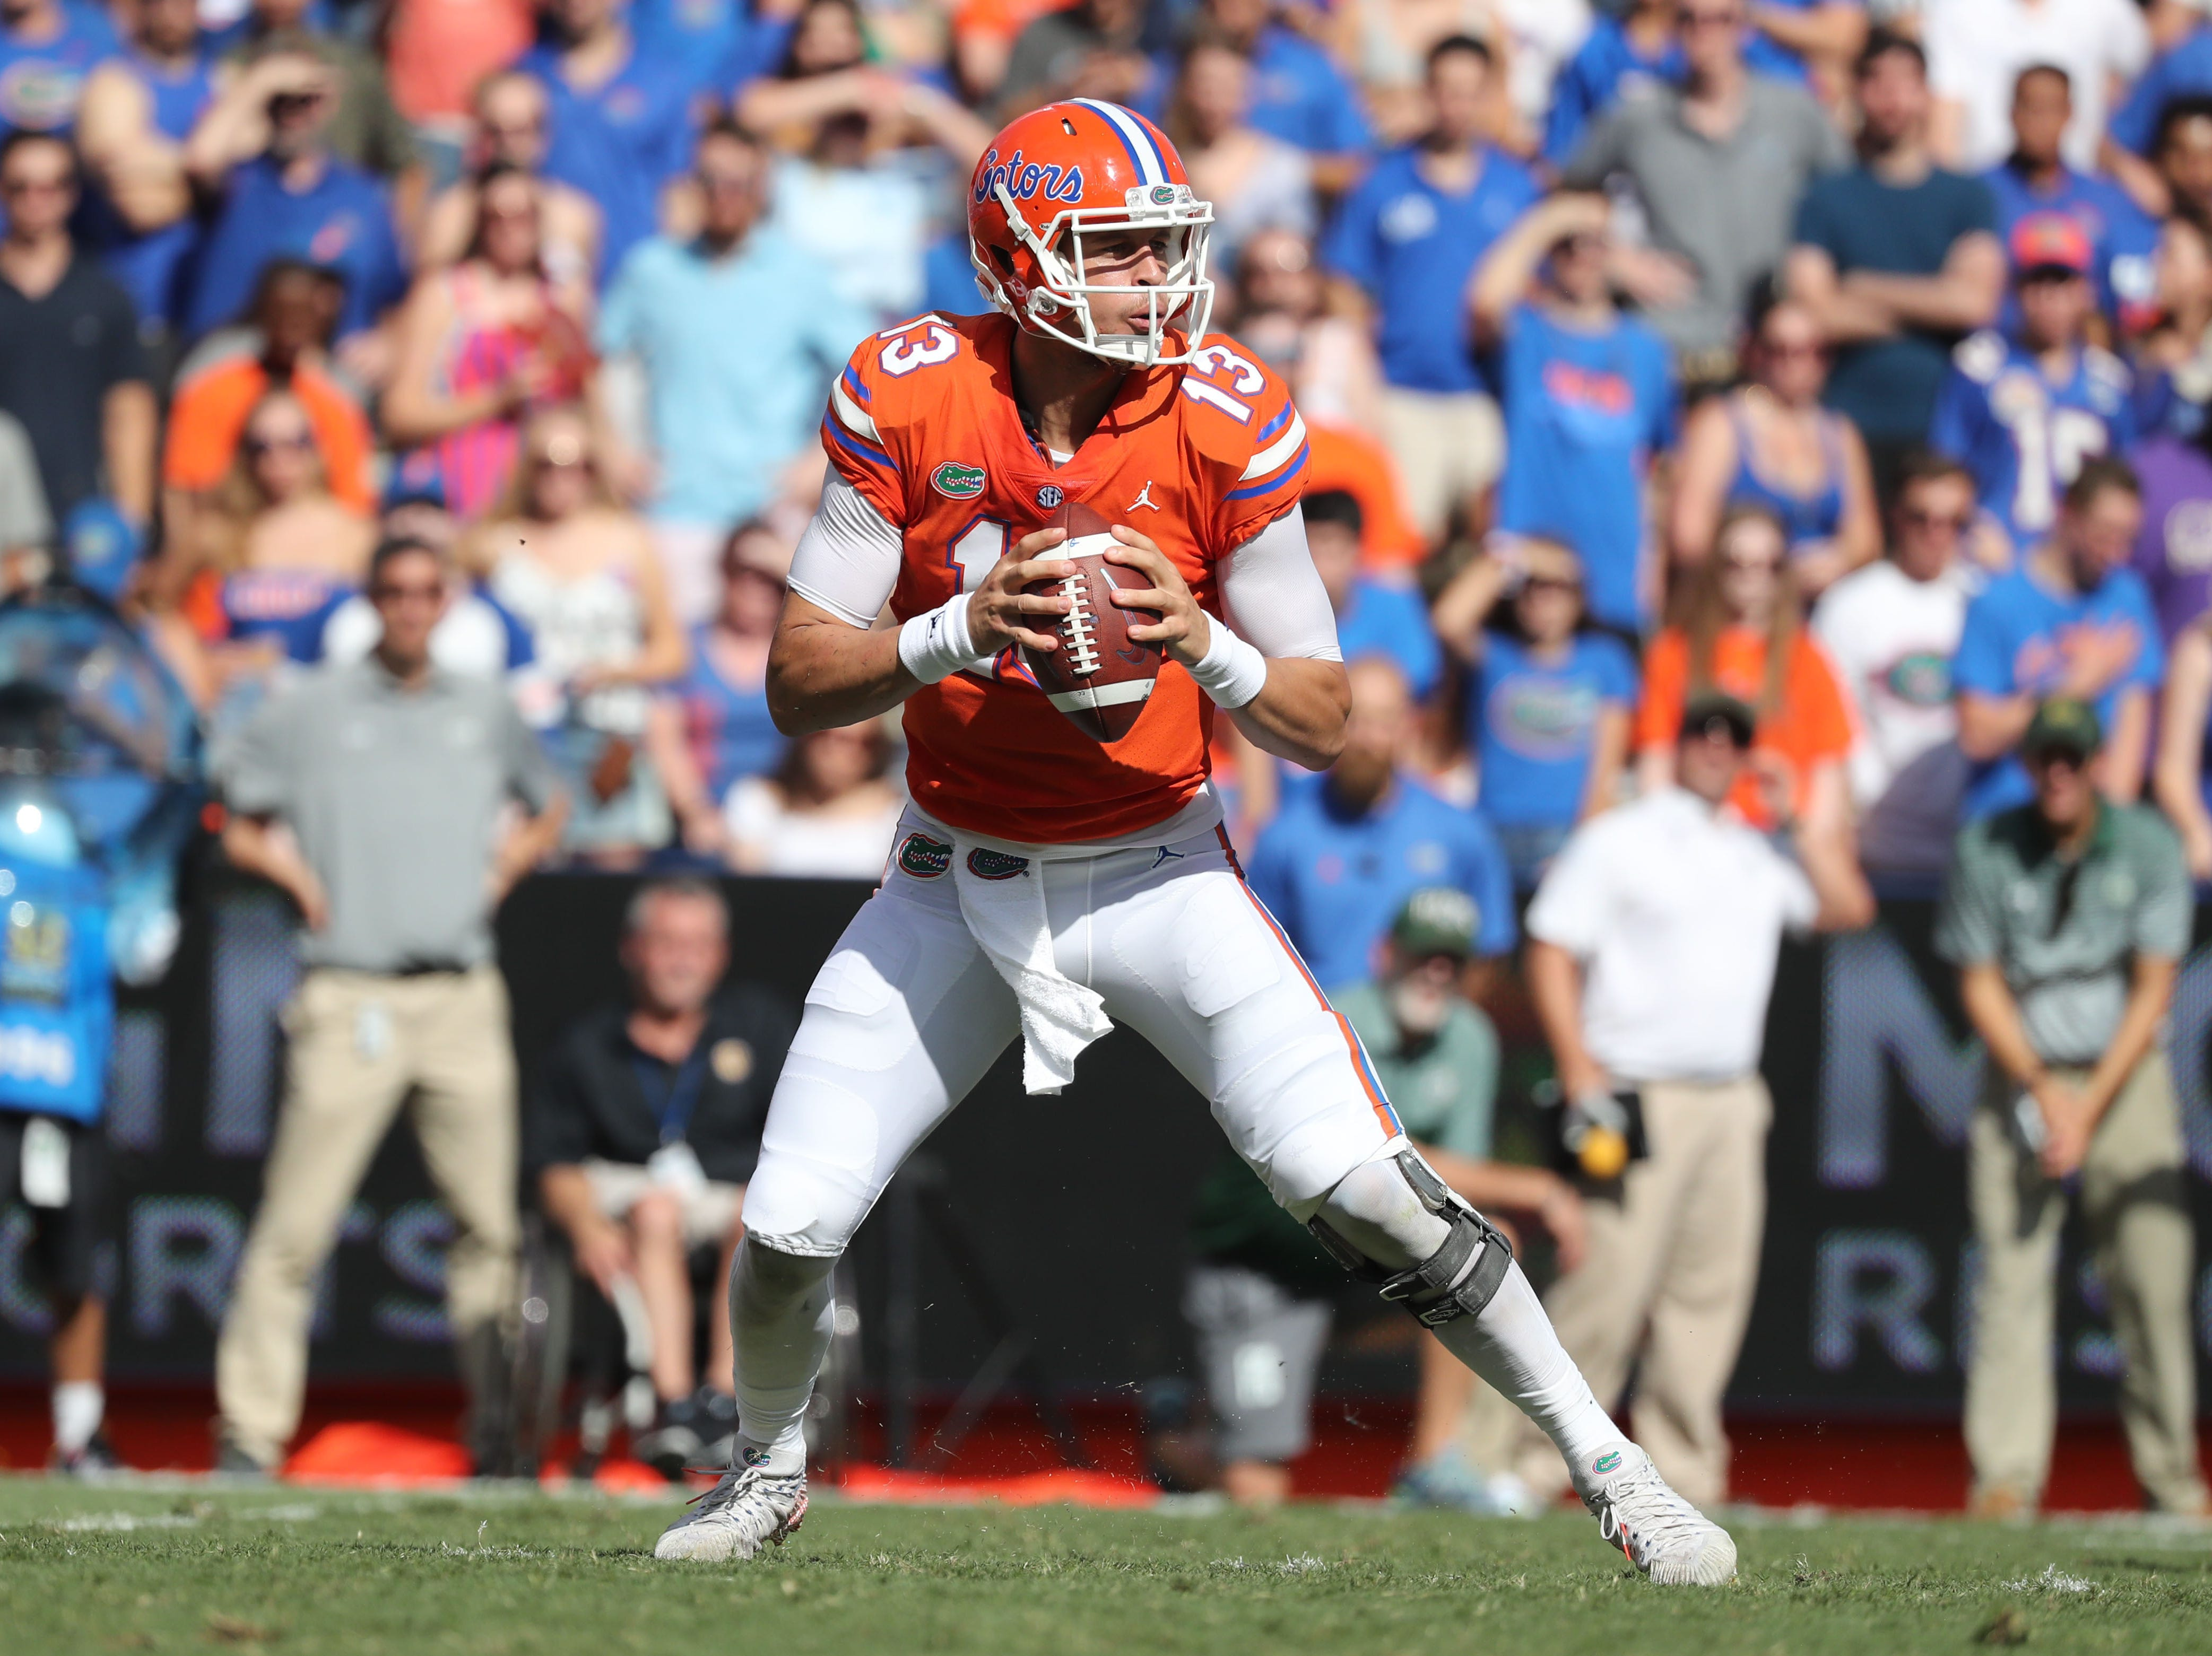 Sep 15, 2018; Gainesville, FL, USA; Florida Gators quarterback Feleipe Franks (13) drops back against the Colorado State Rams during the first quarter at Ben Hill Griffin Stadium. Mandatory Credit: Kim Klement-USA TODAY Sports